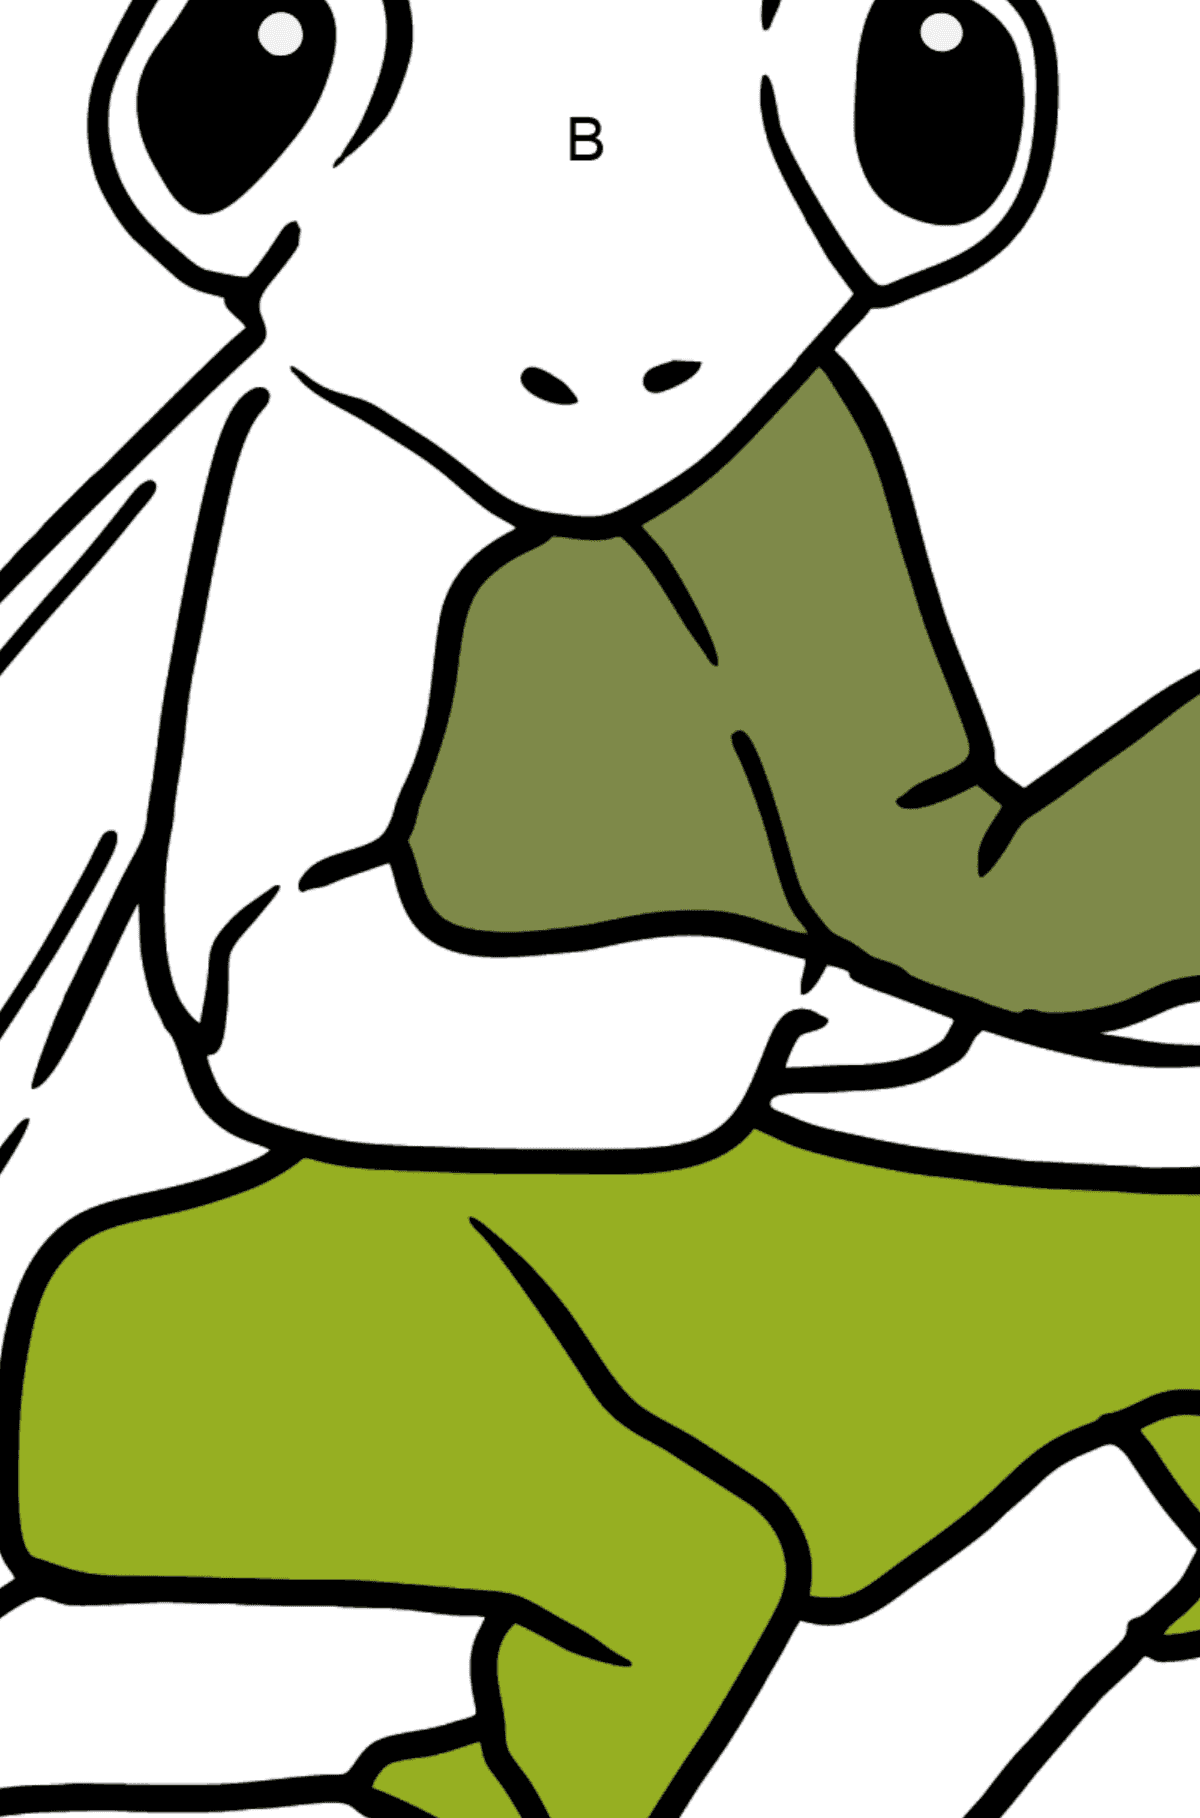 Mantis coloring page - Coloring by Letters for Kids